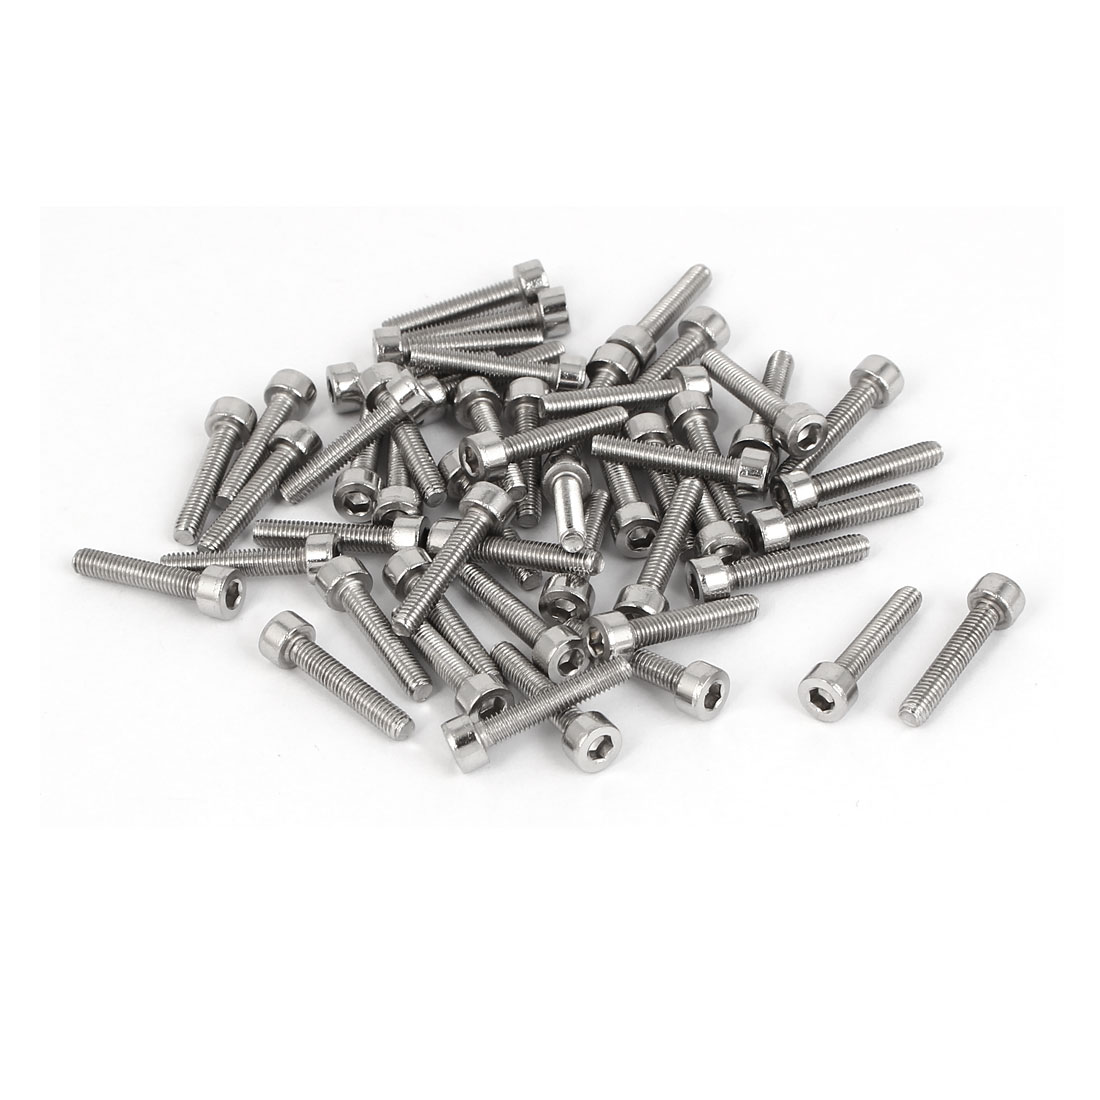 M3 x 16mm 24mm Length Stainless Steel Hex Socket Head Cap Screw Bolt 50pcs